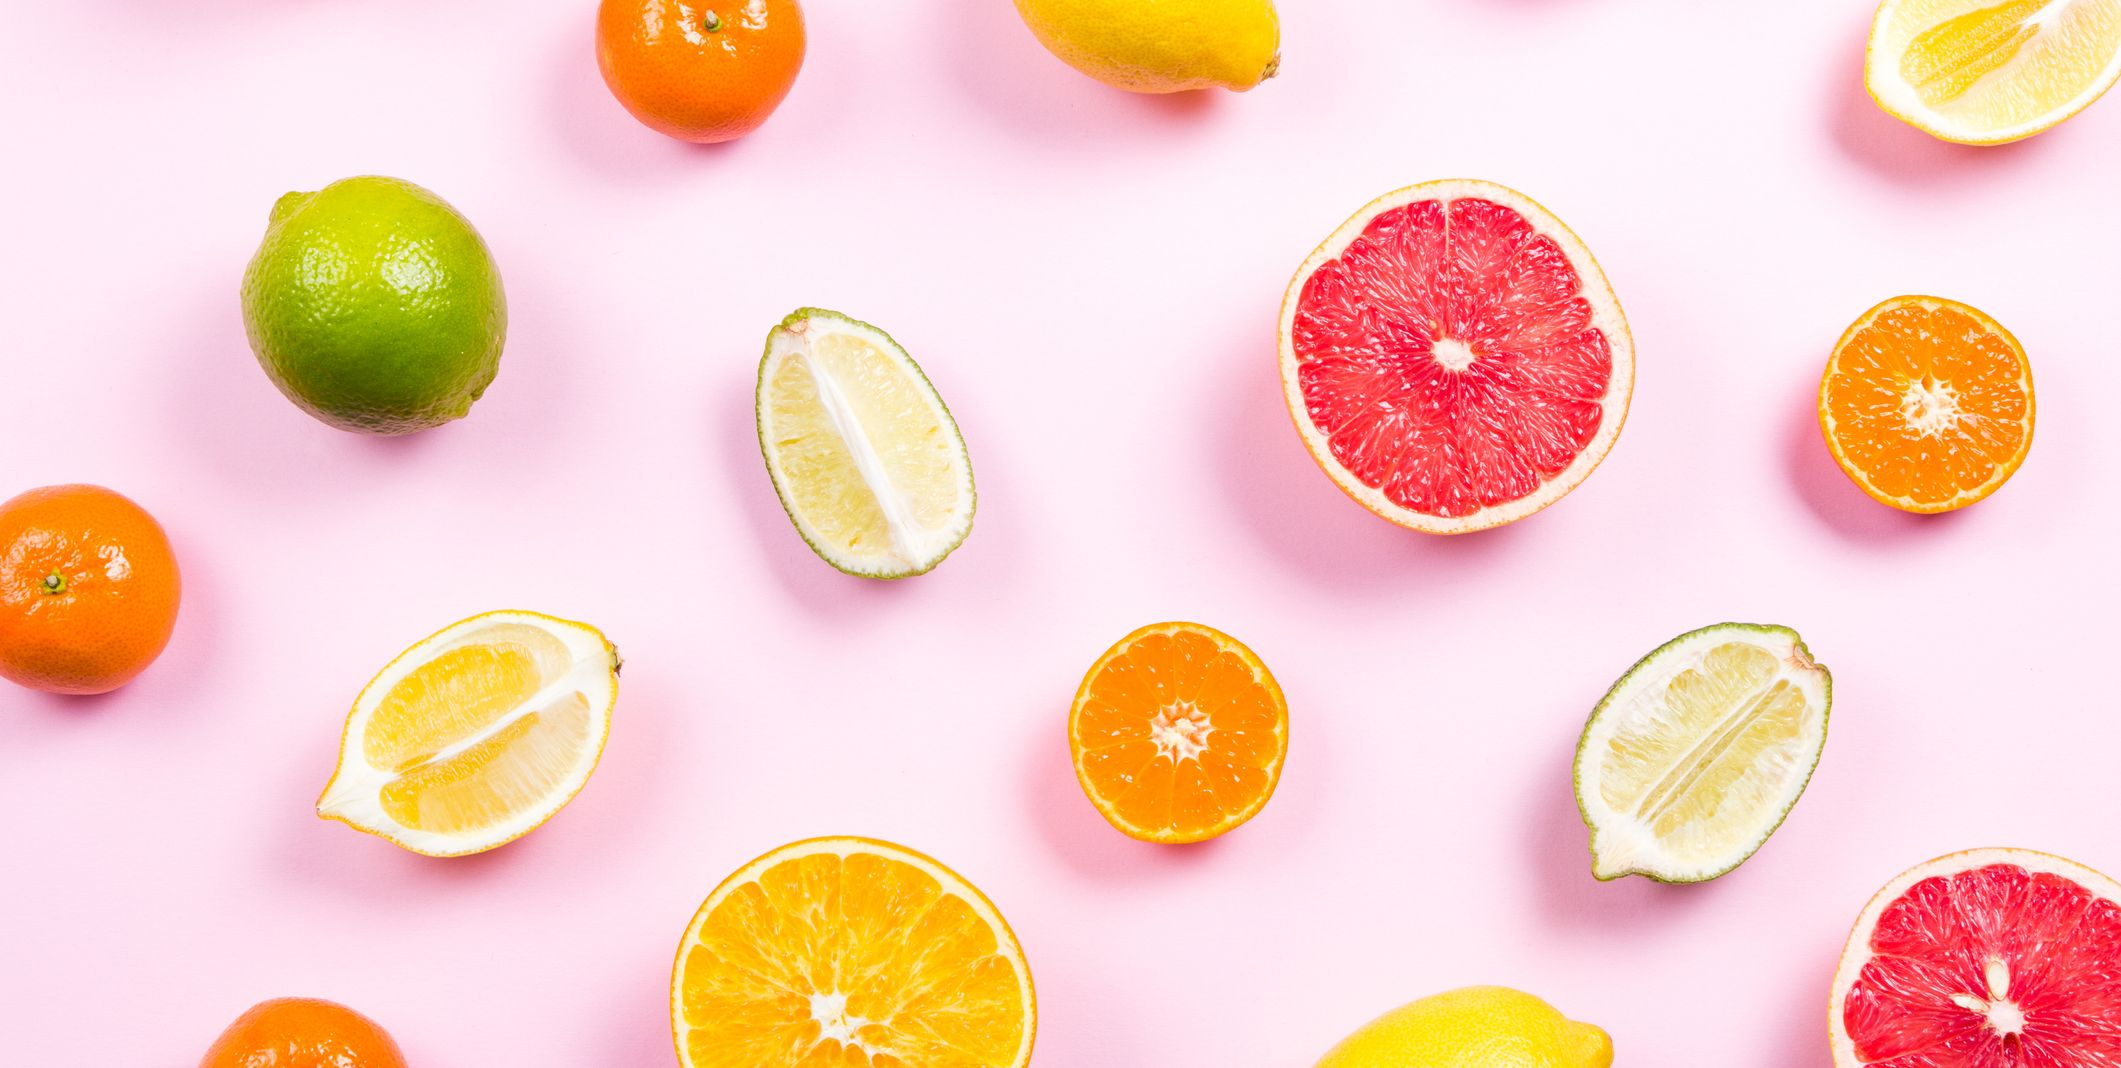 Several kinds of whole and cut citrus on a pink background